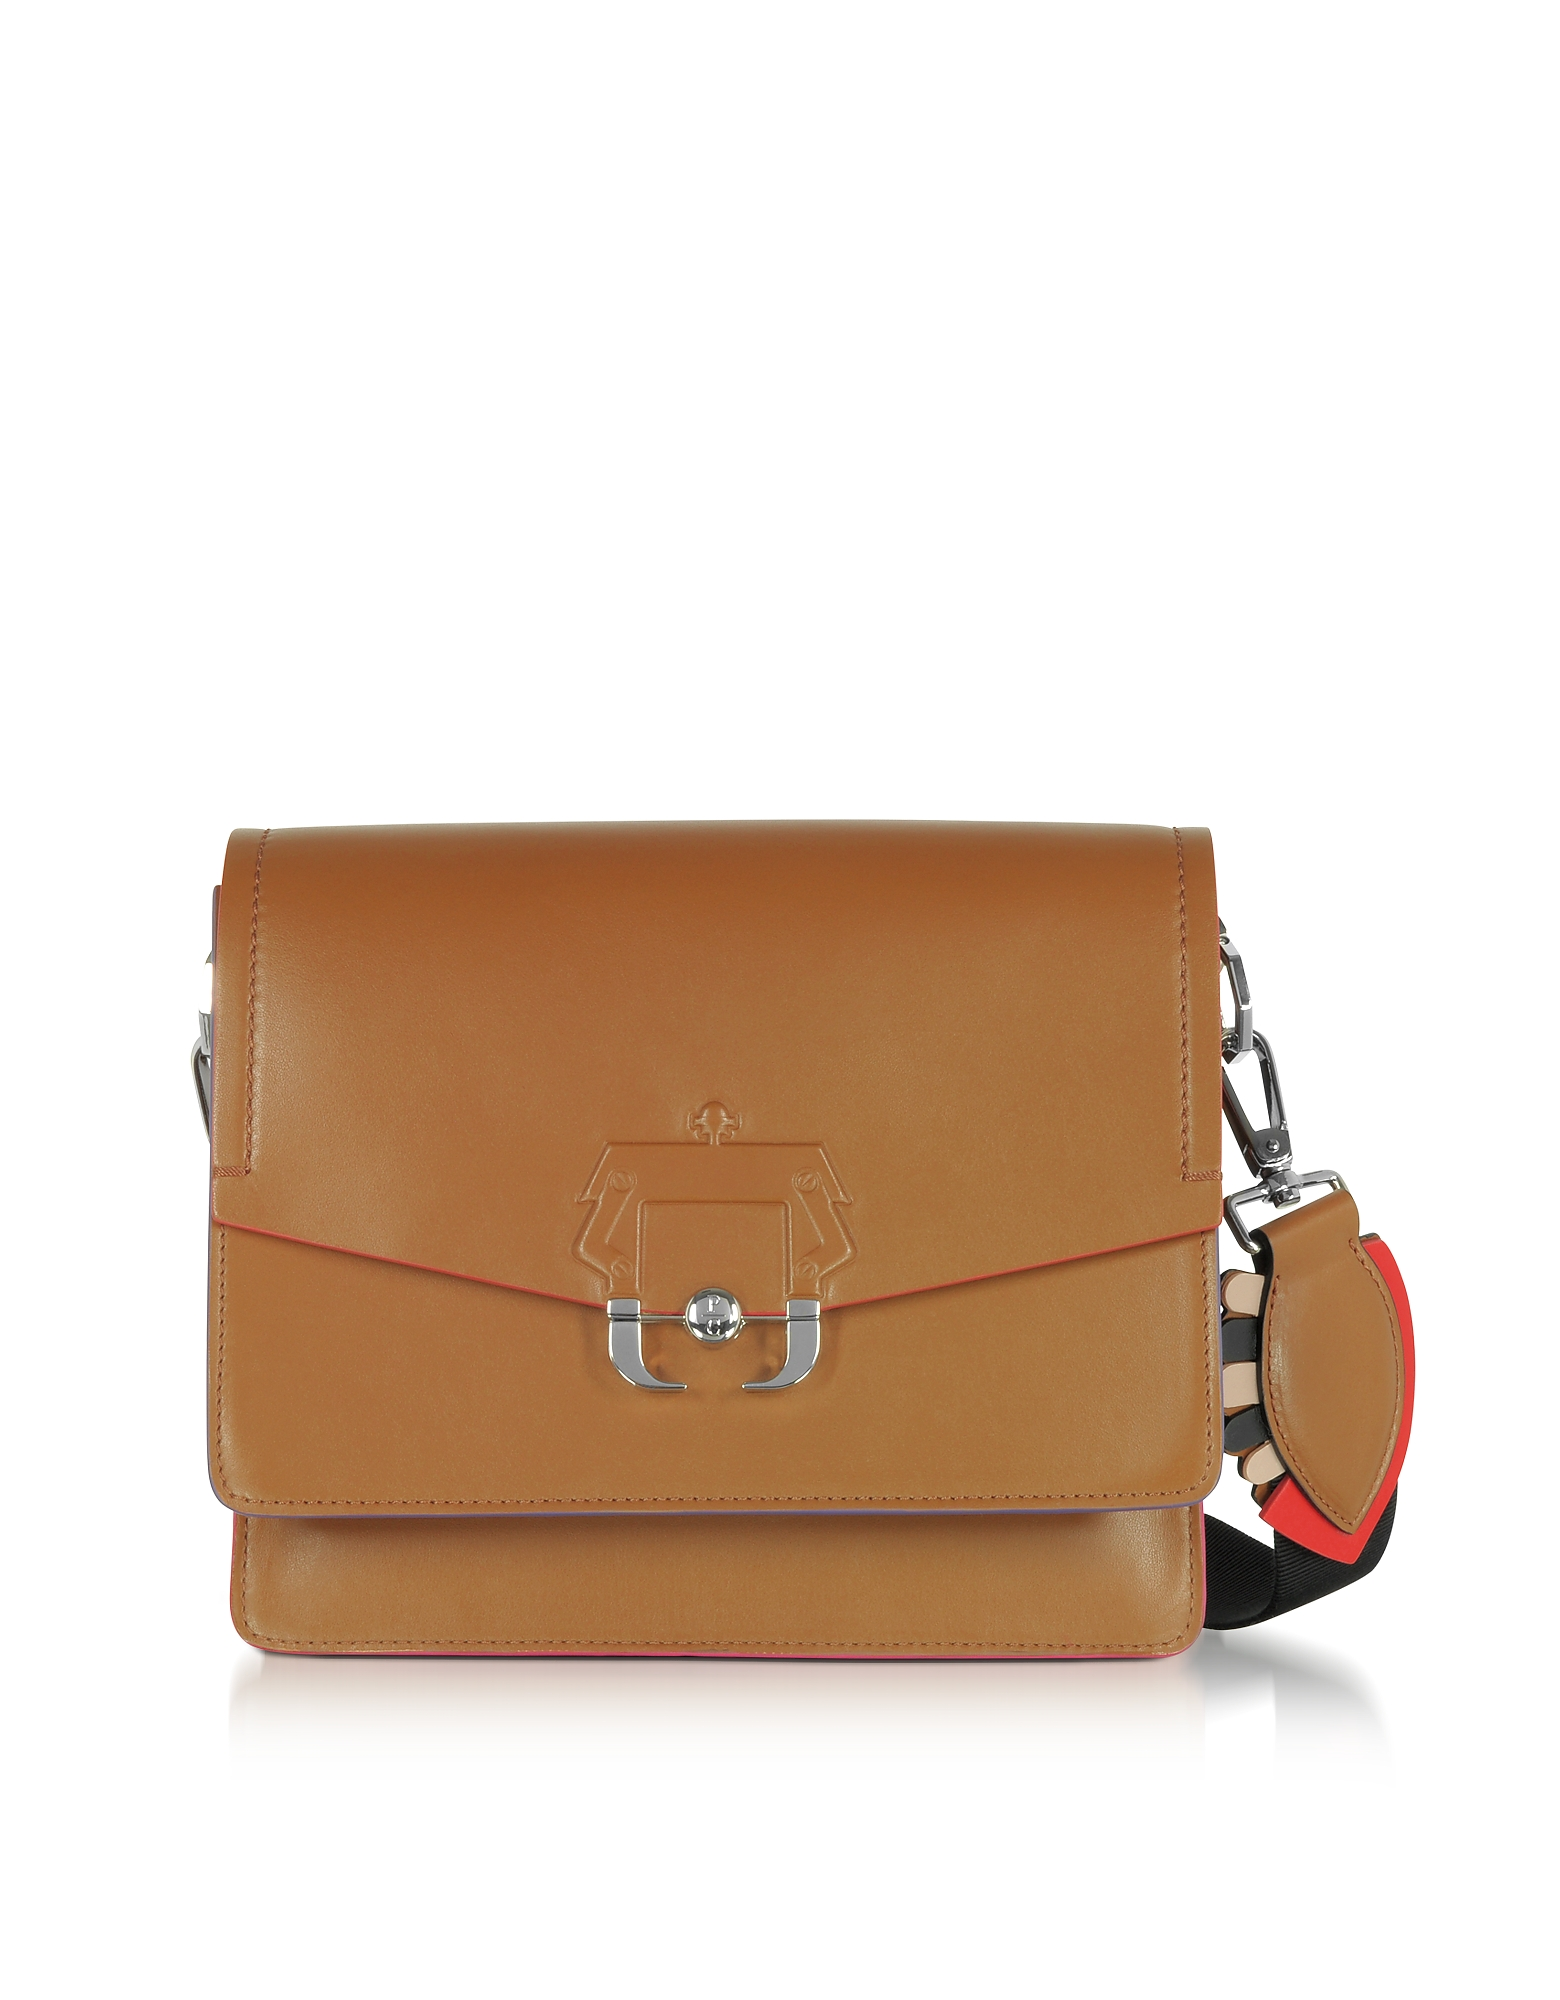 Paula Cademartori Handbags, Twiggy Leather Shoulder Bag